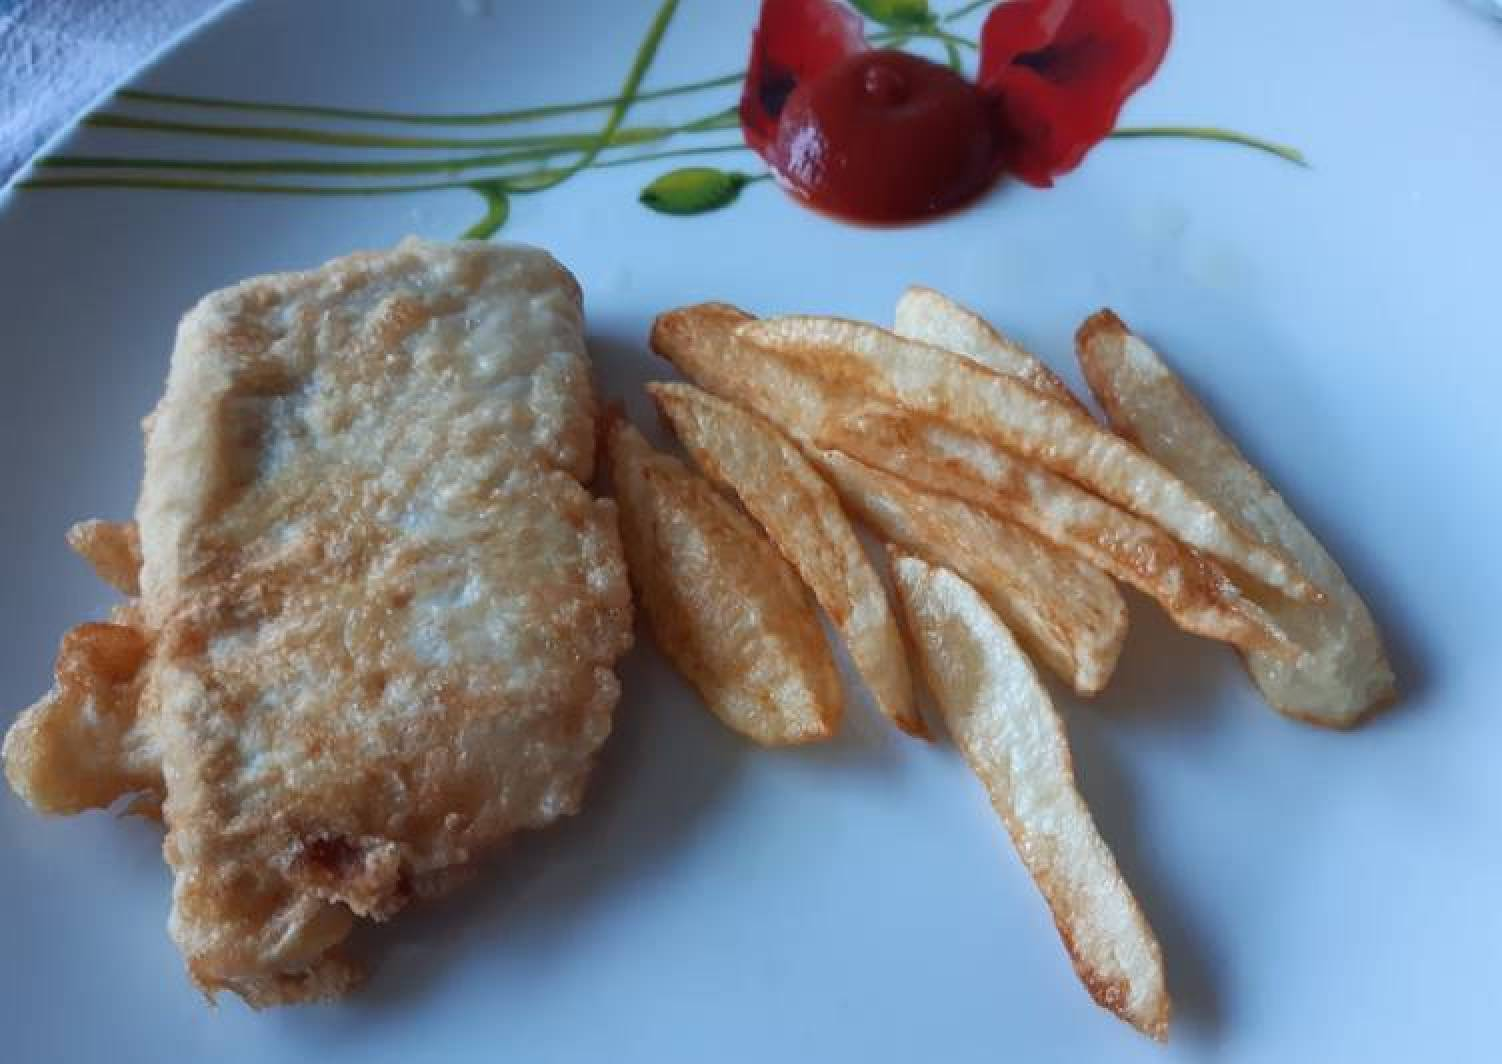 Almu's fish and chips. Battered hake and chips